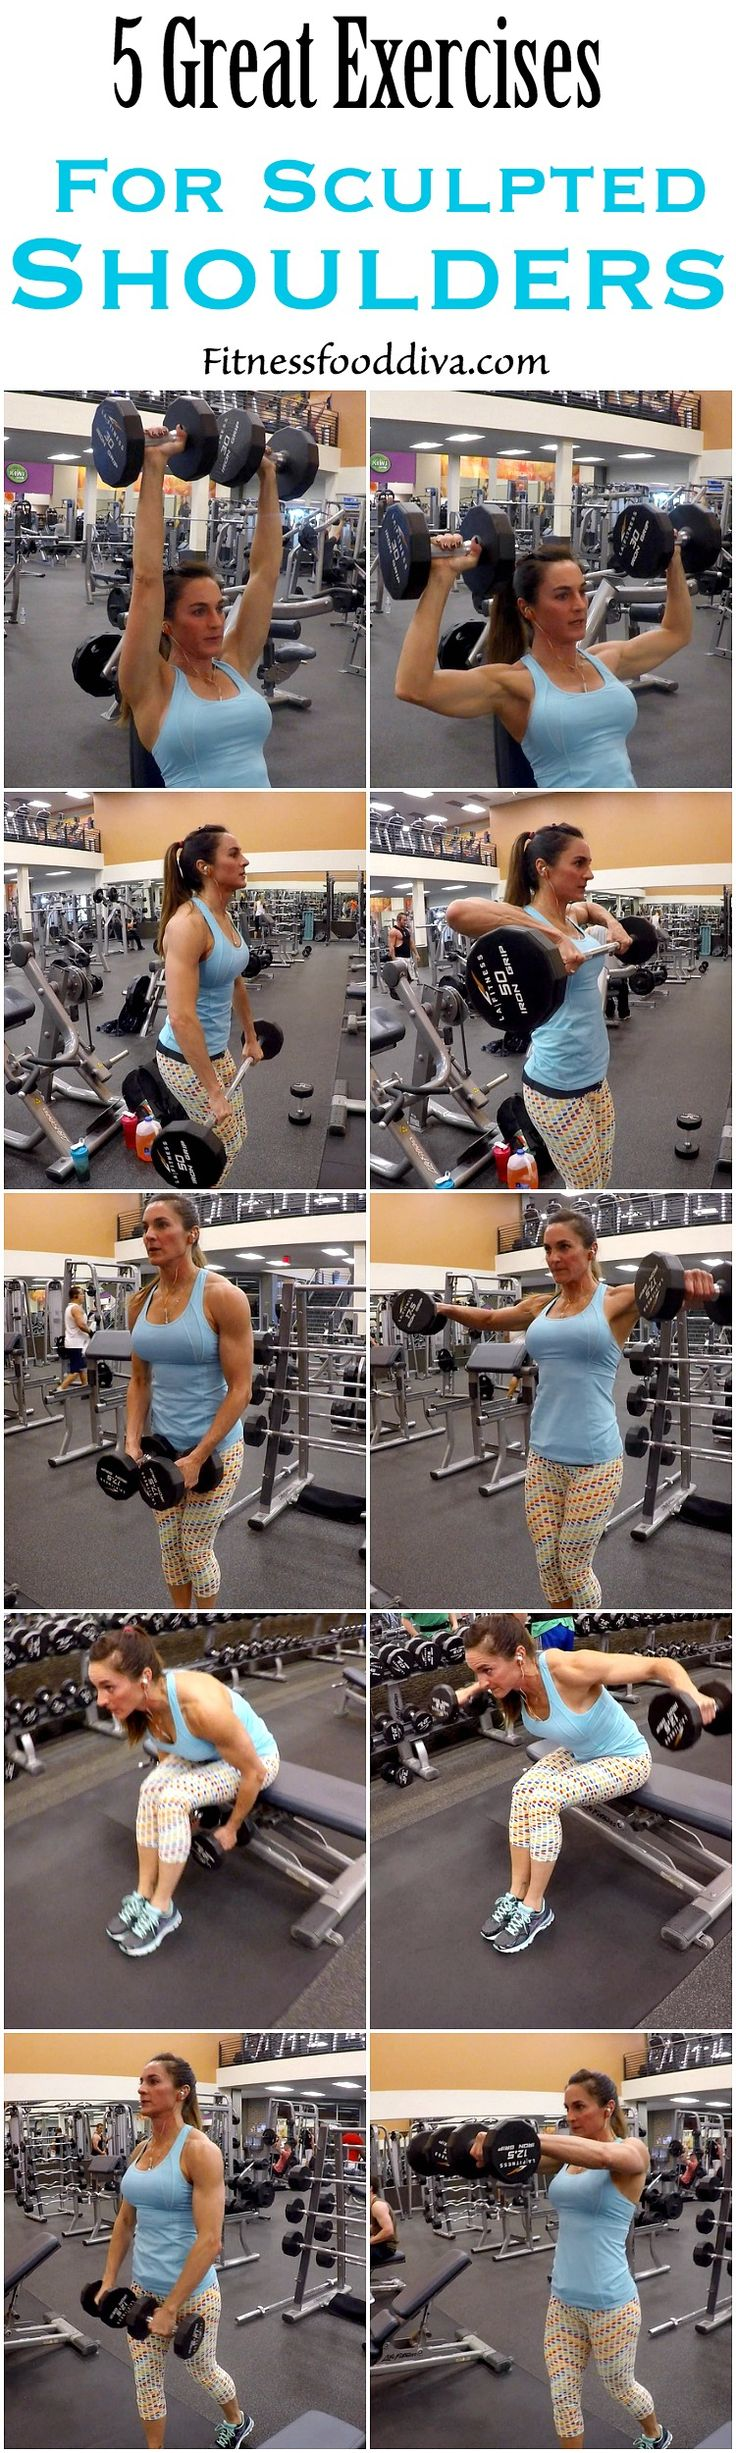 Sculpt round, sexy shoulders with 5 Exercises.